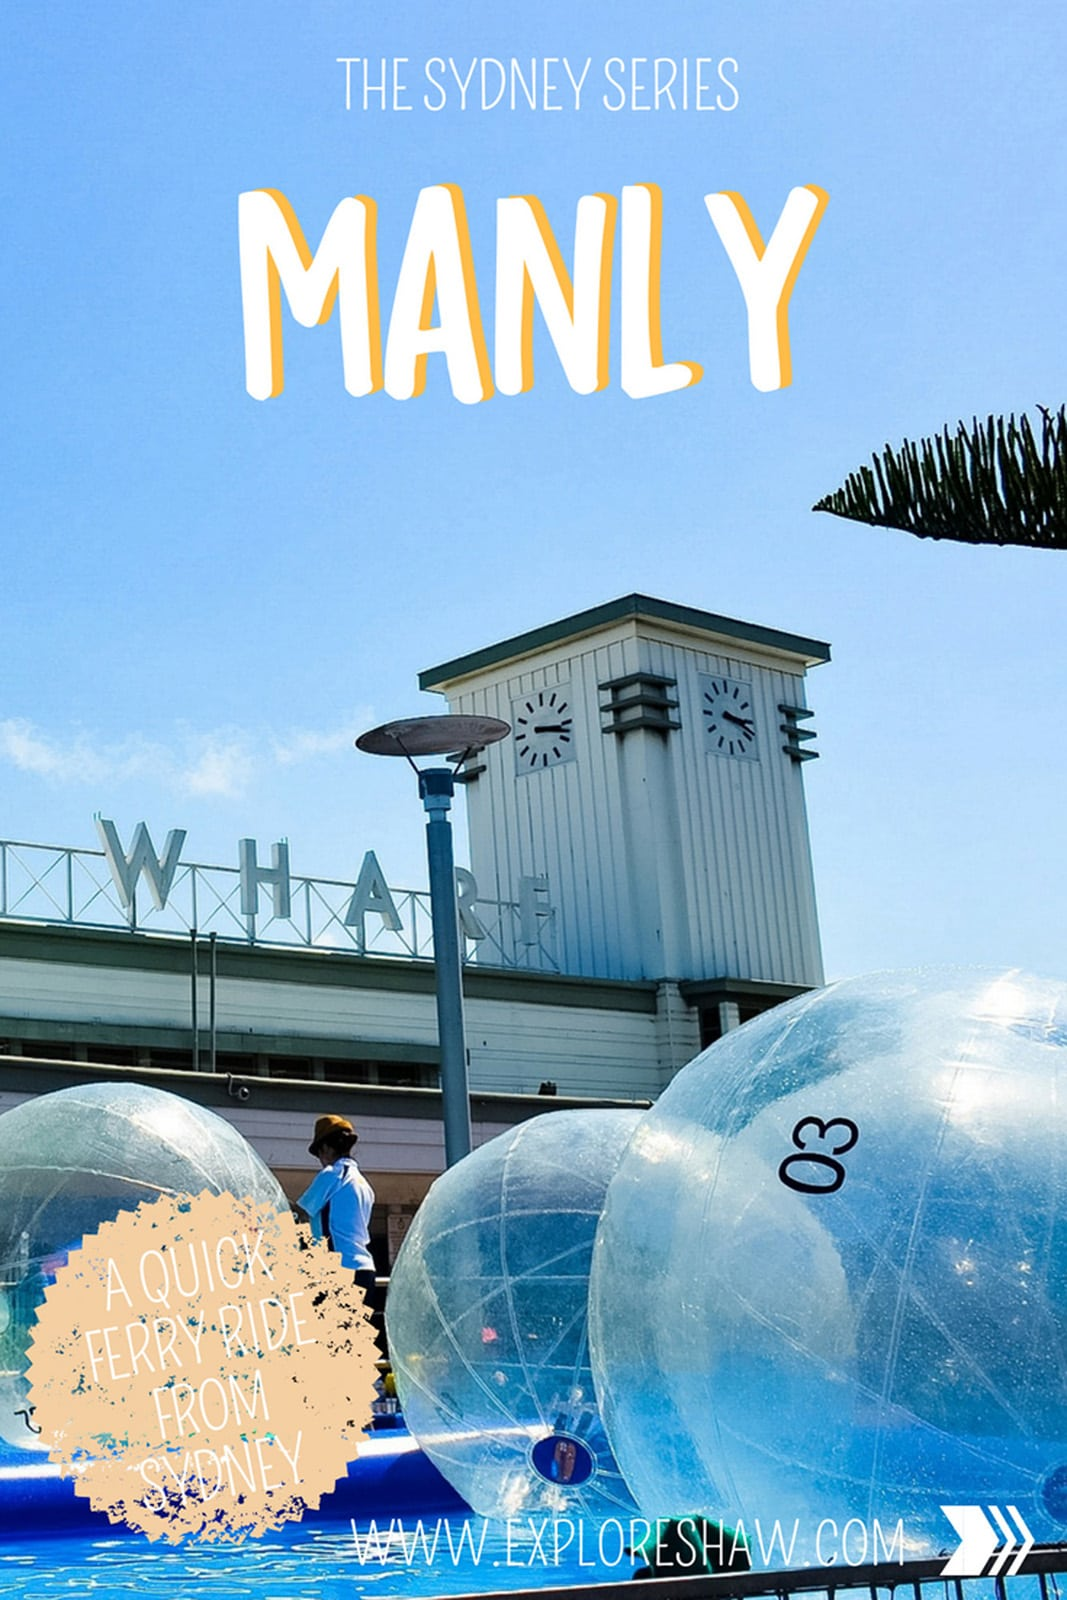 A trip to Sydney wouldn't be complete without a visit to Manly via the ferry across Circular Quay. Here's our photo journal of one of our favourite beaches in Sydney. #Australia #Sydney #Manly